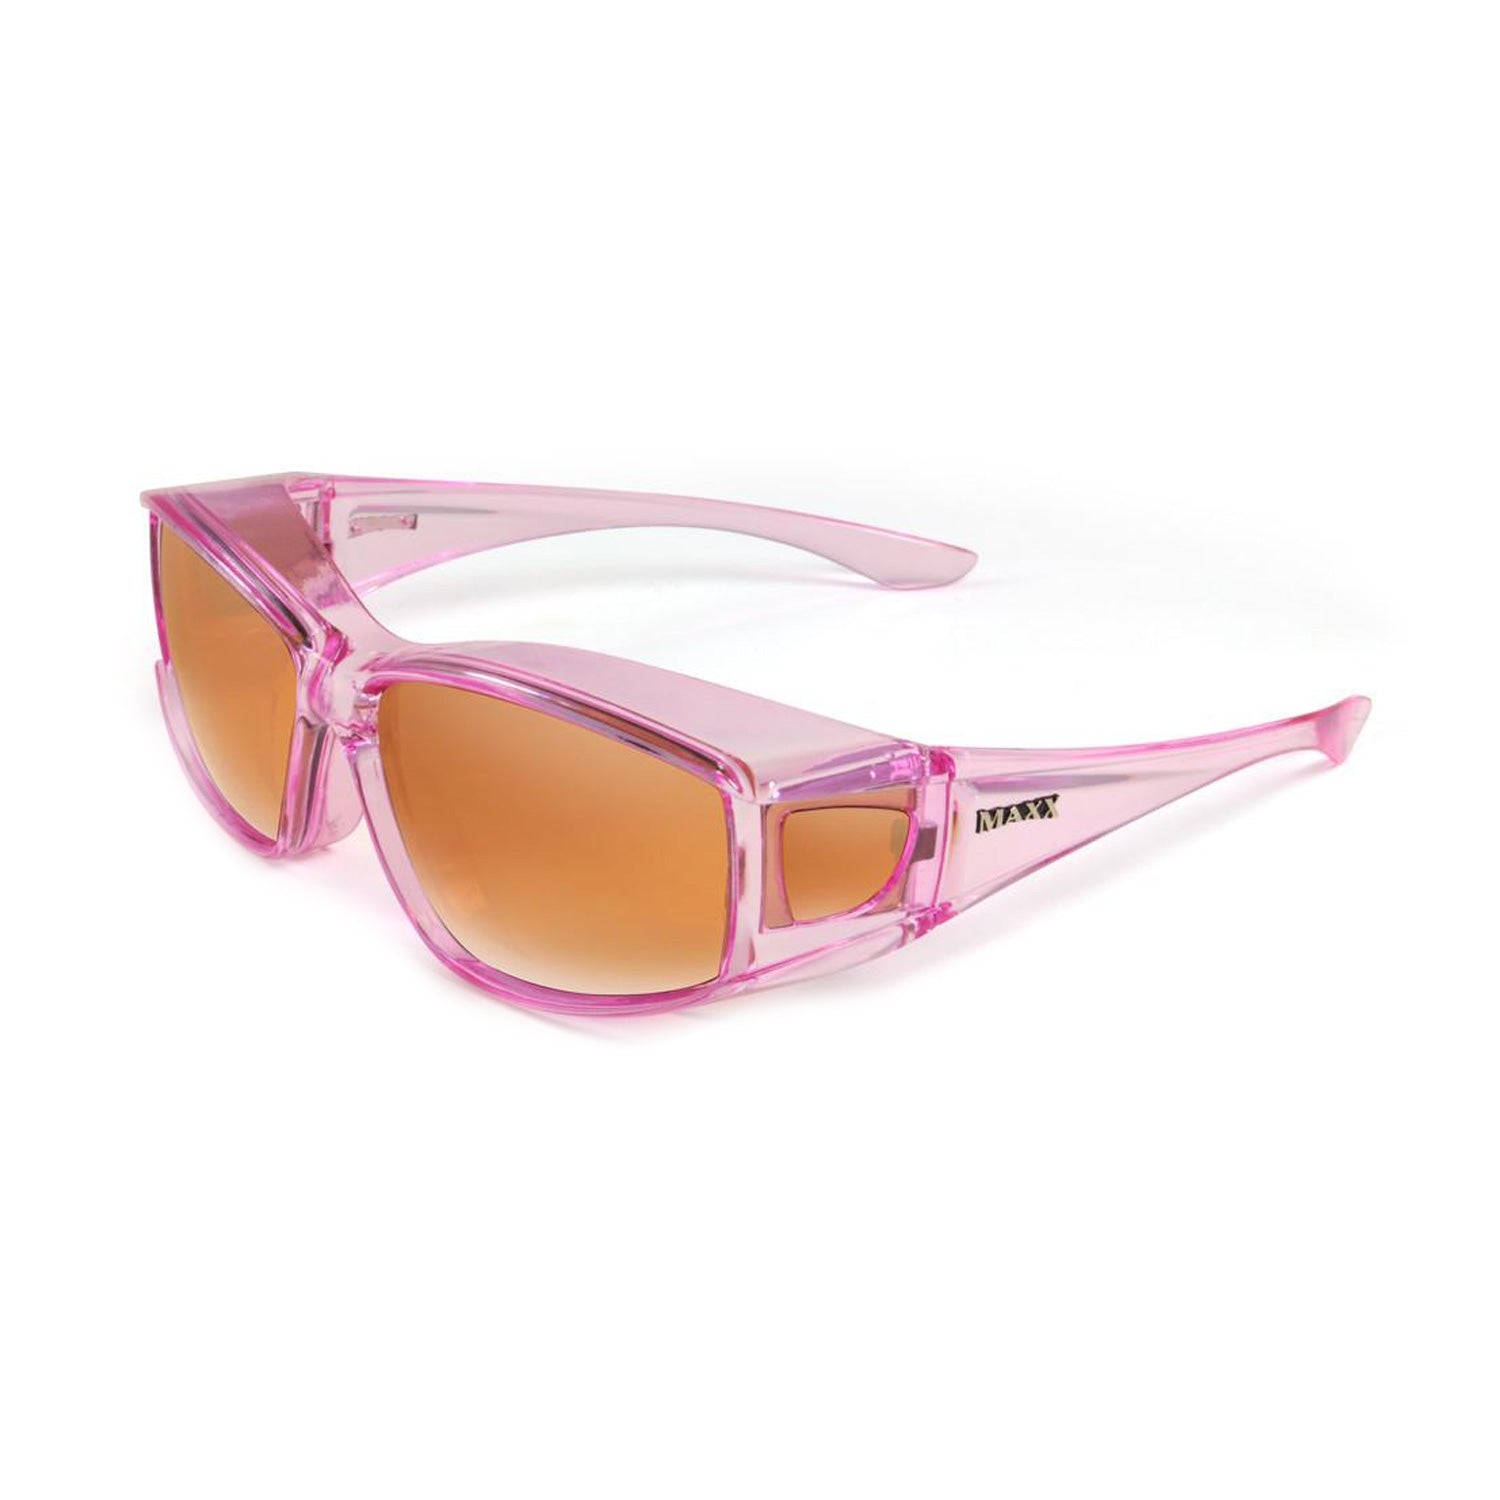 OTG (Over the Glasses) HD Pink